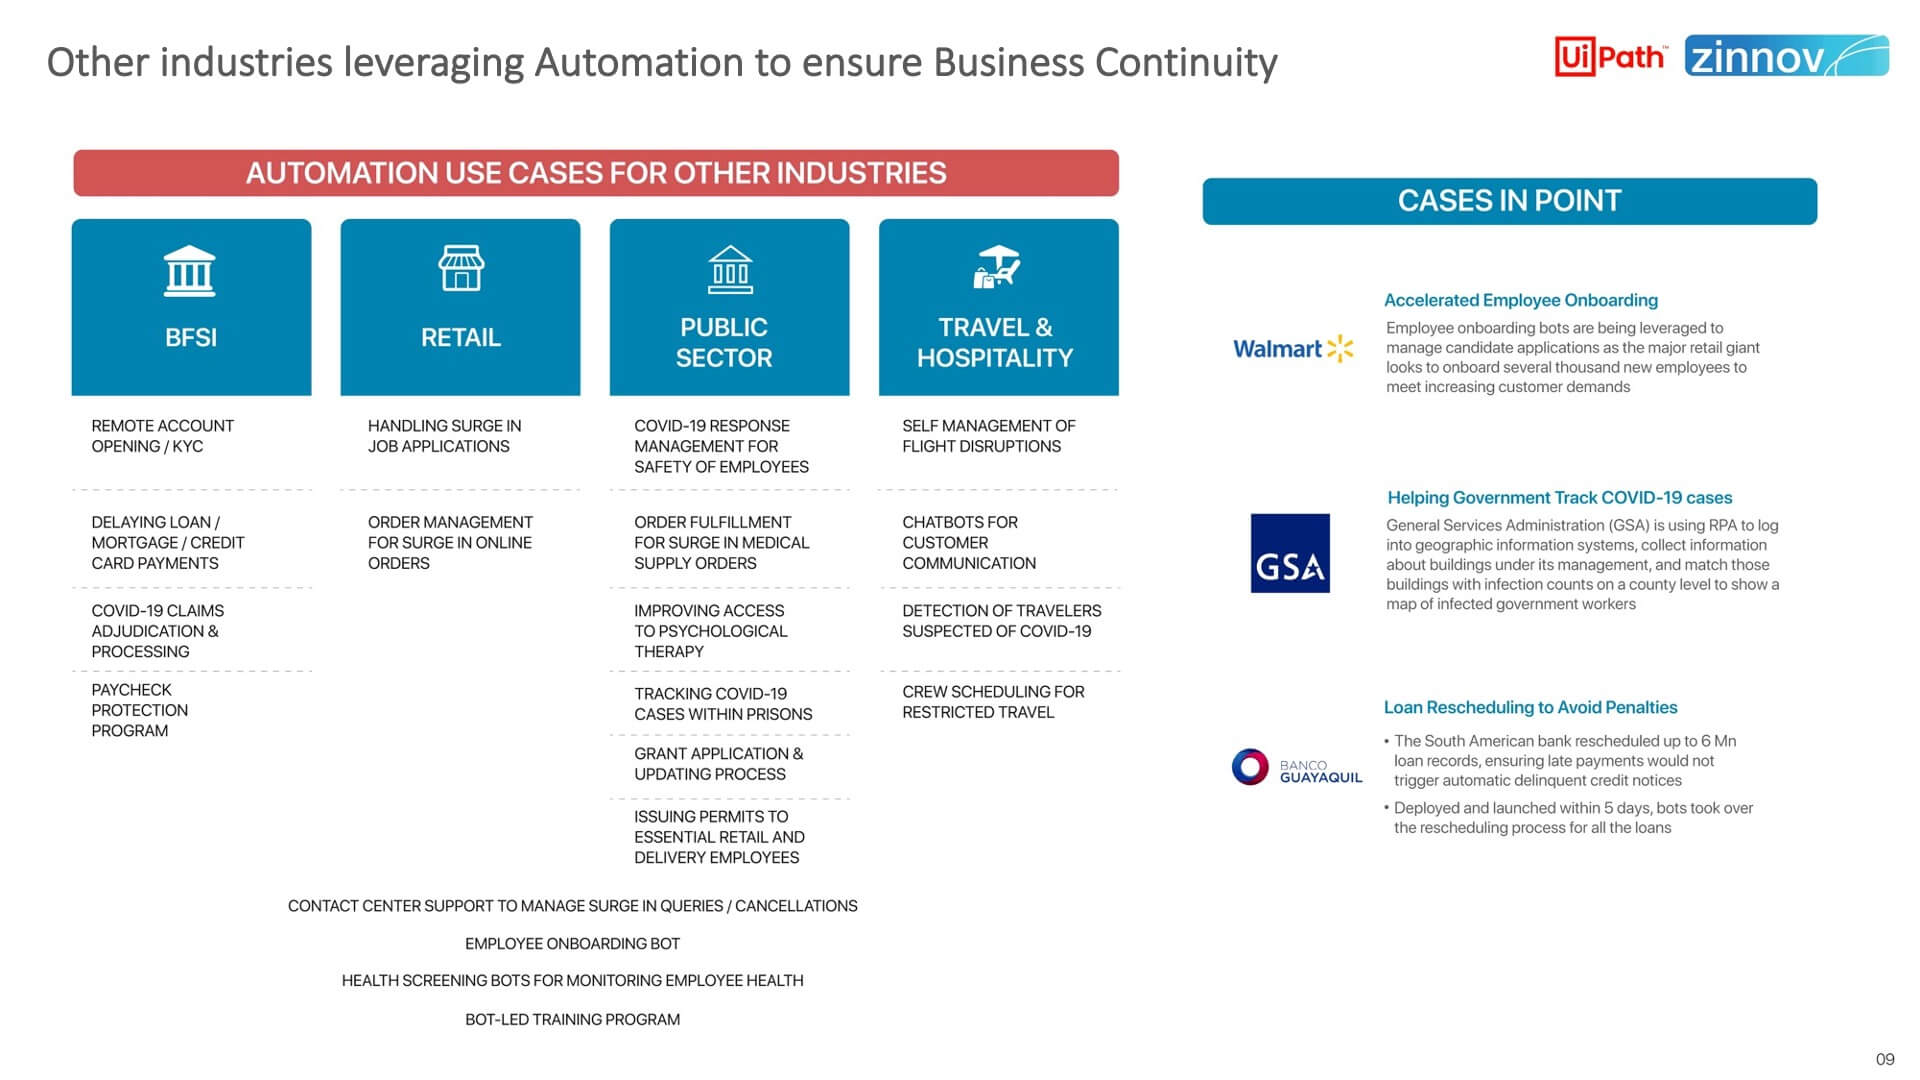 Hyper Intelligent Automation – Accelerating Business Resiliency During COVID-19